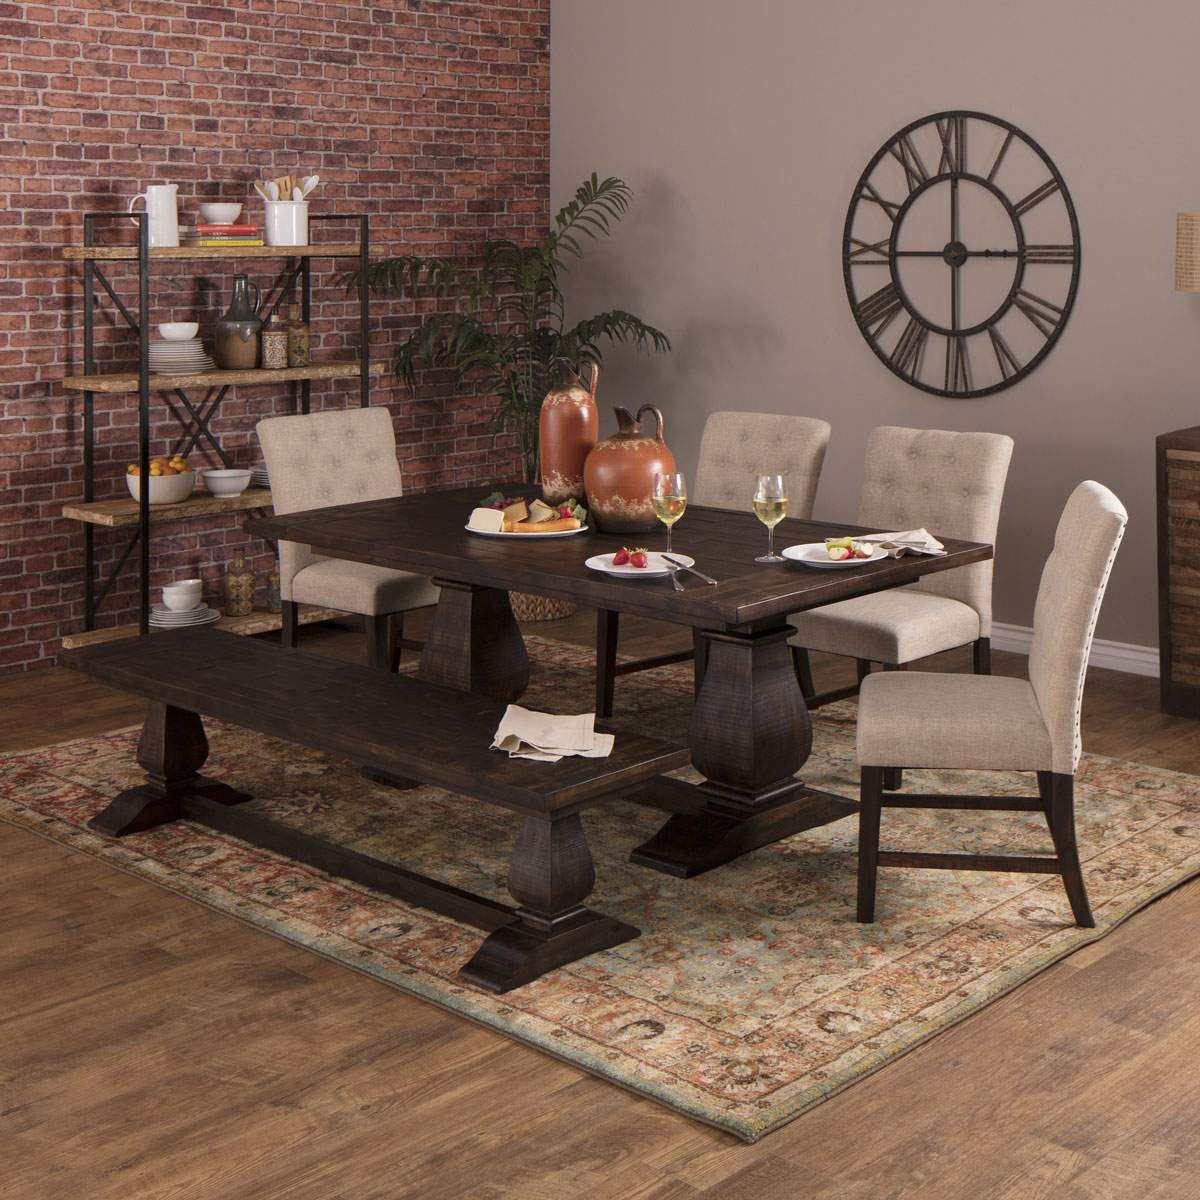 Roanoke Dining Room Interiors Dining Room Furniture Sets